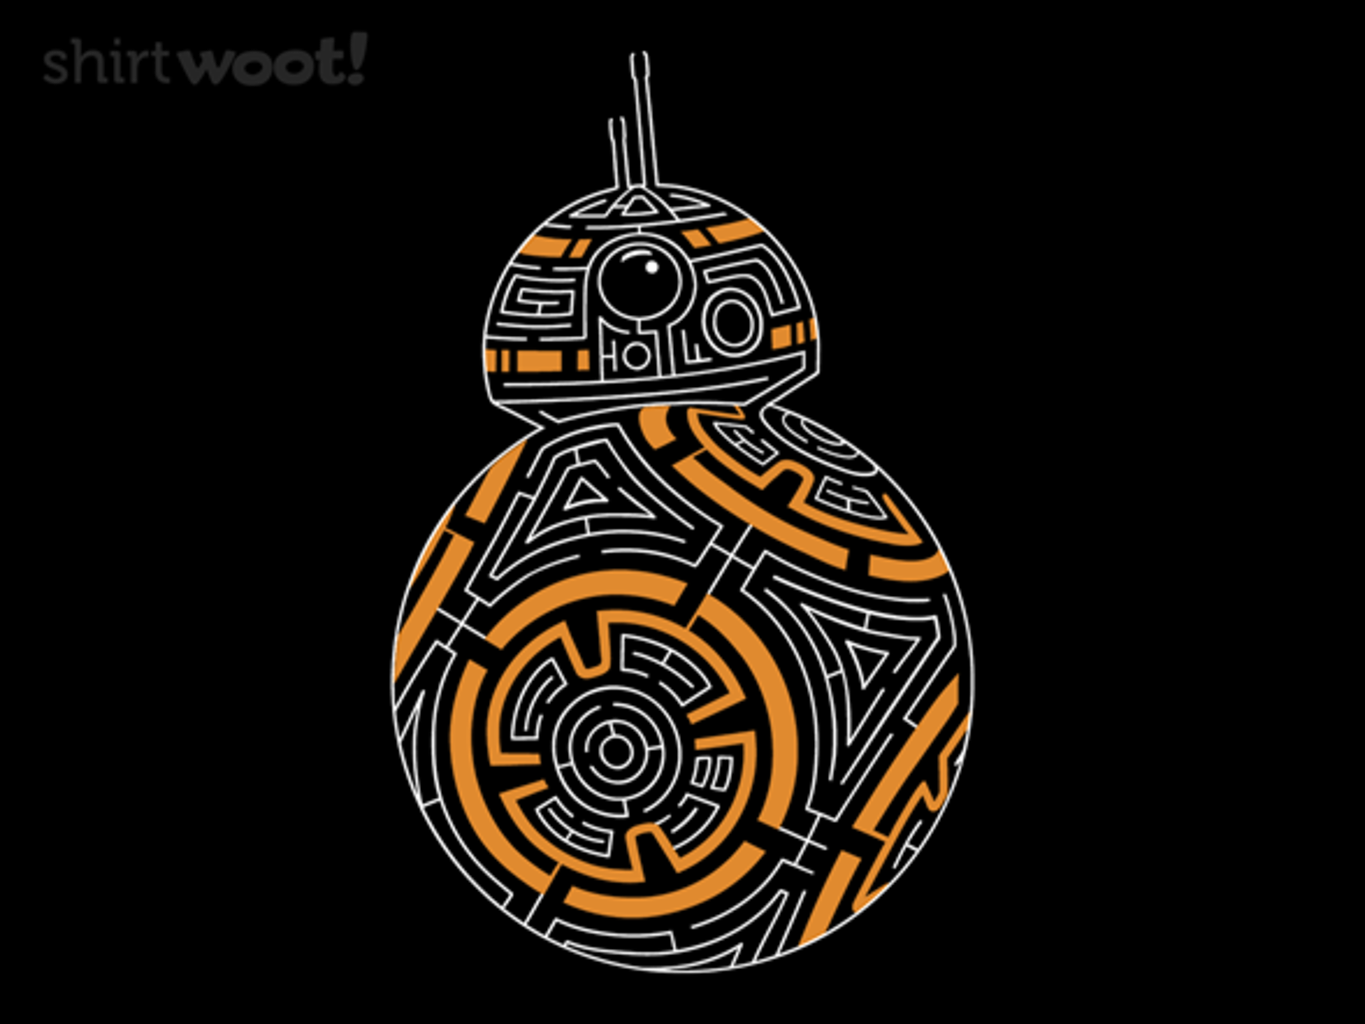 Woot!: BB8 is Amazing